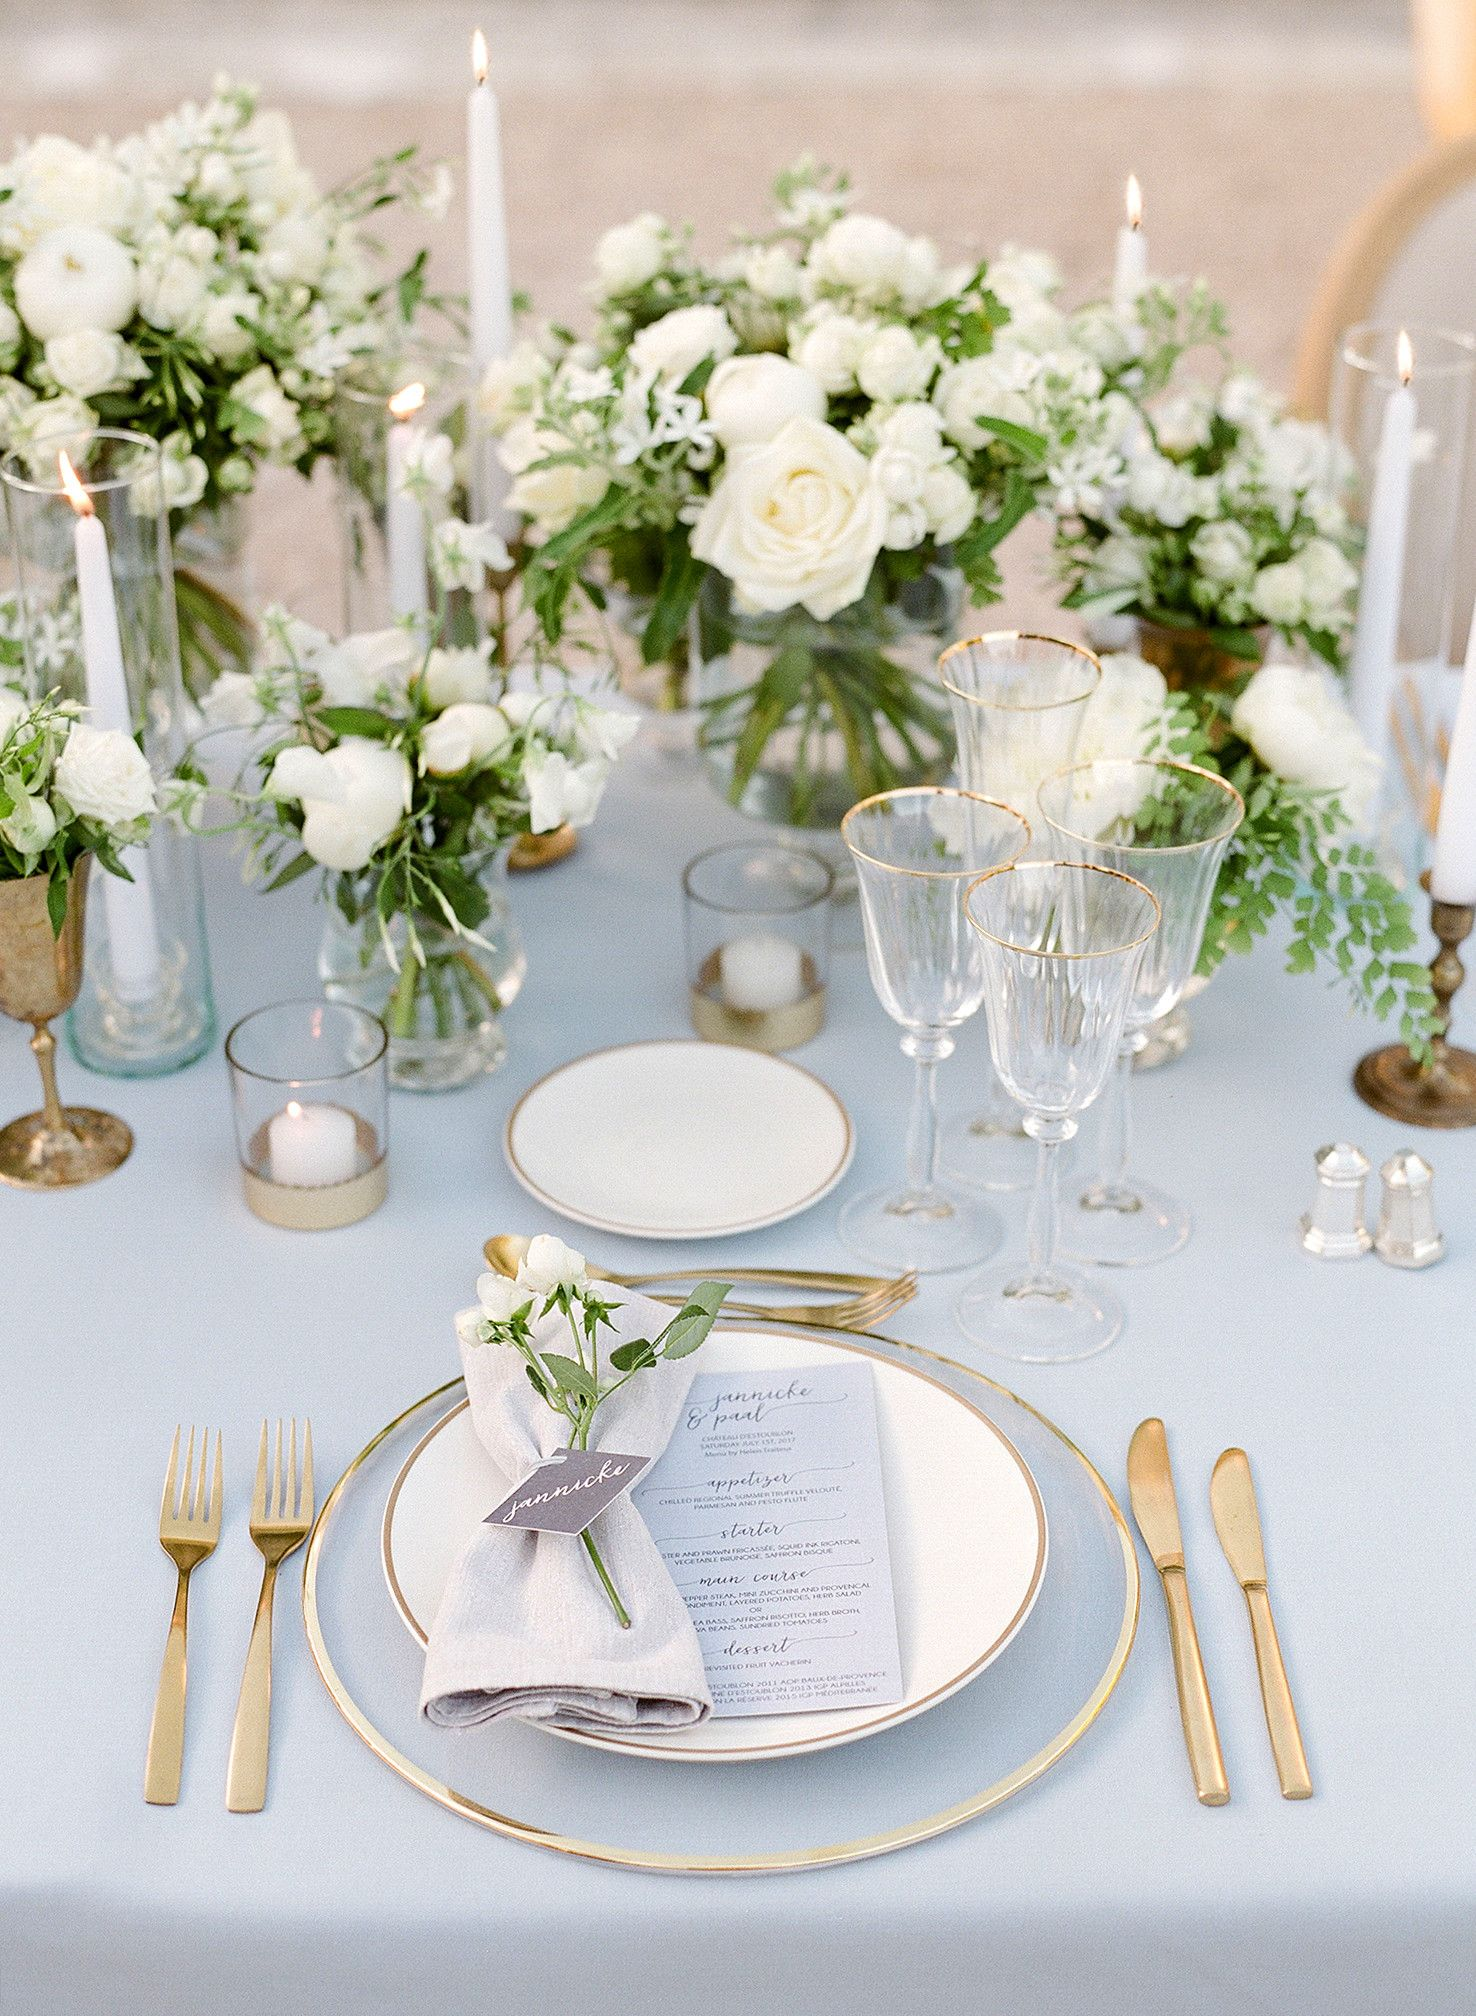 The delicate place settings included glass chargers